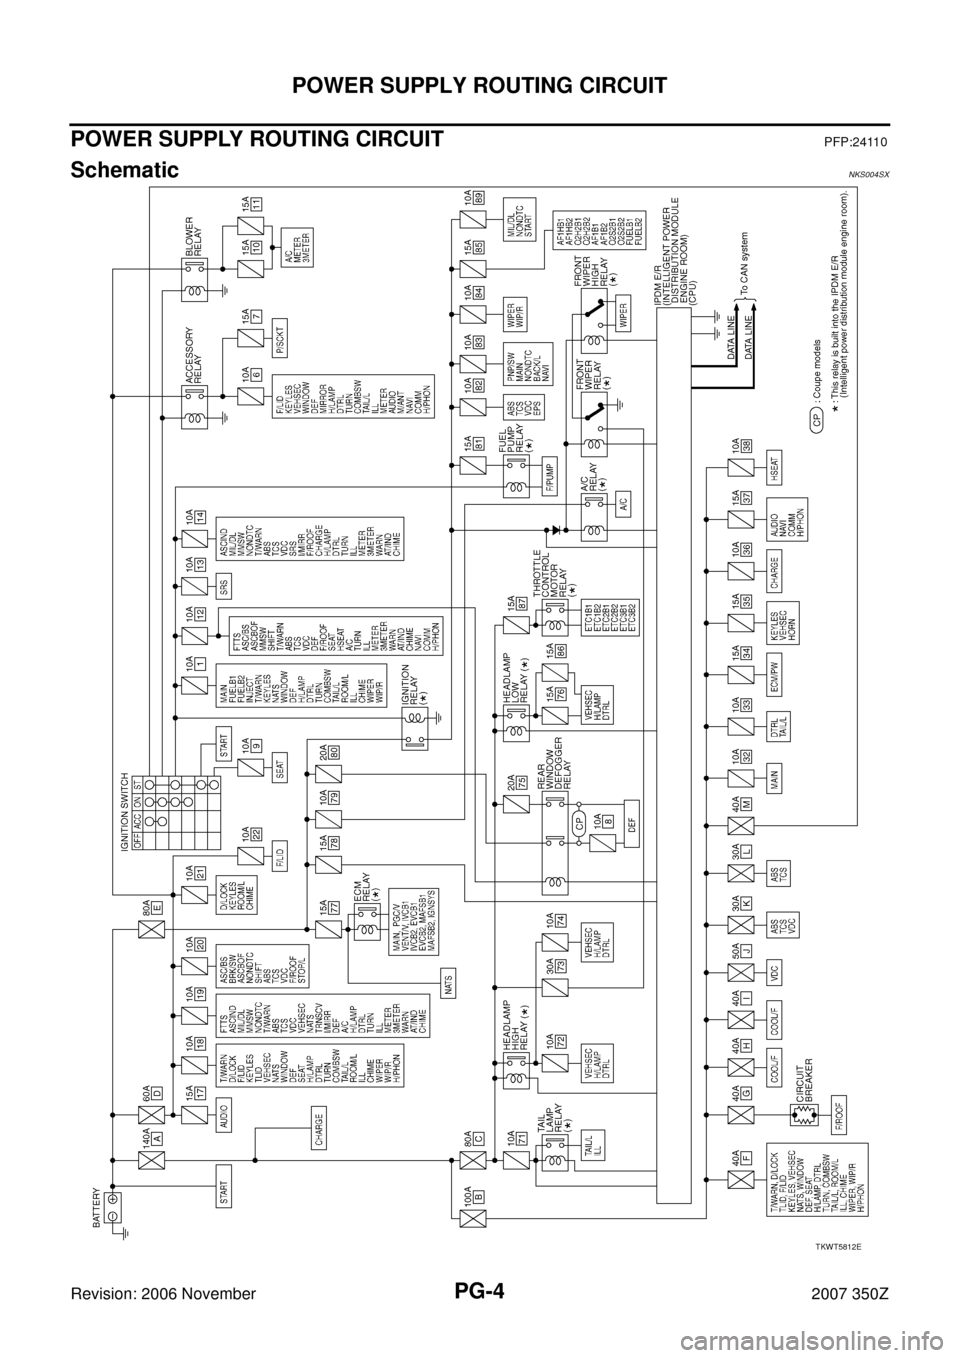 2000 nissan frontier fuse box further electrical wiring diagram on